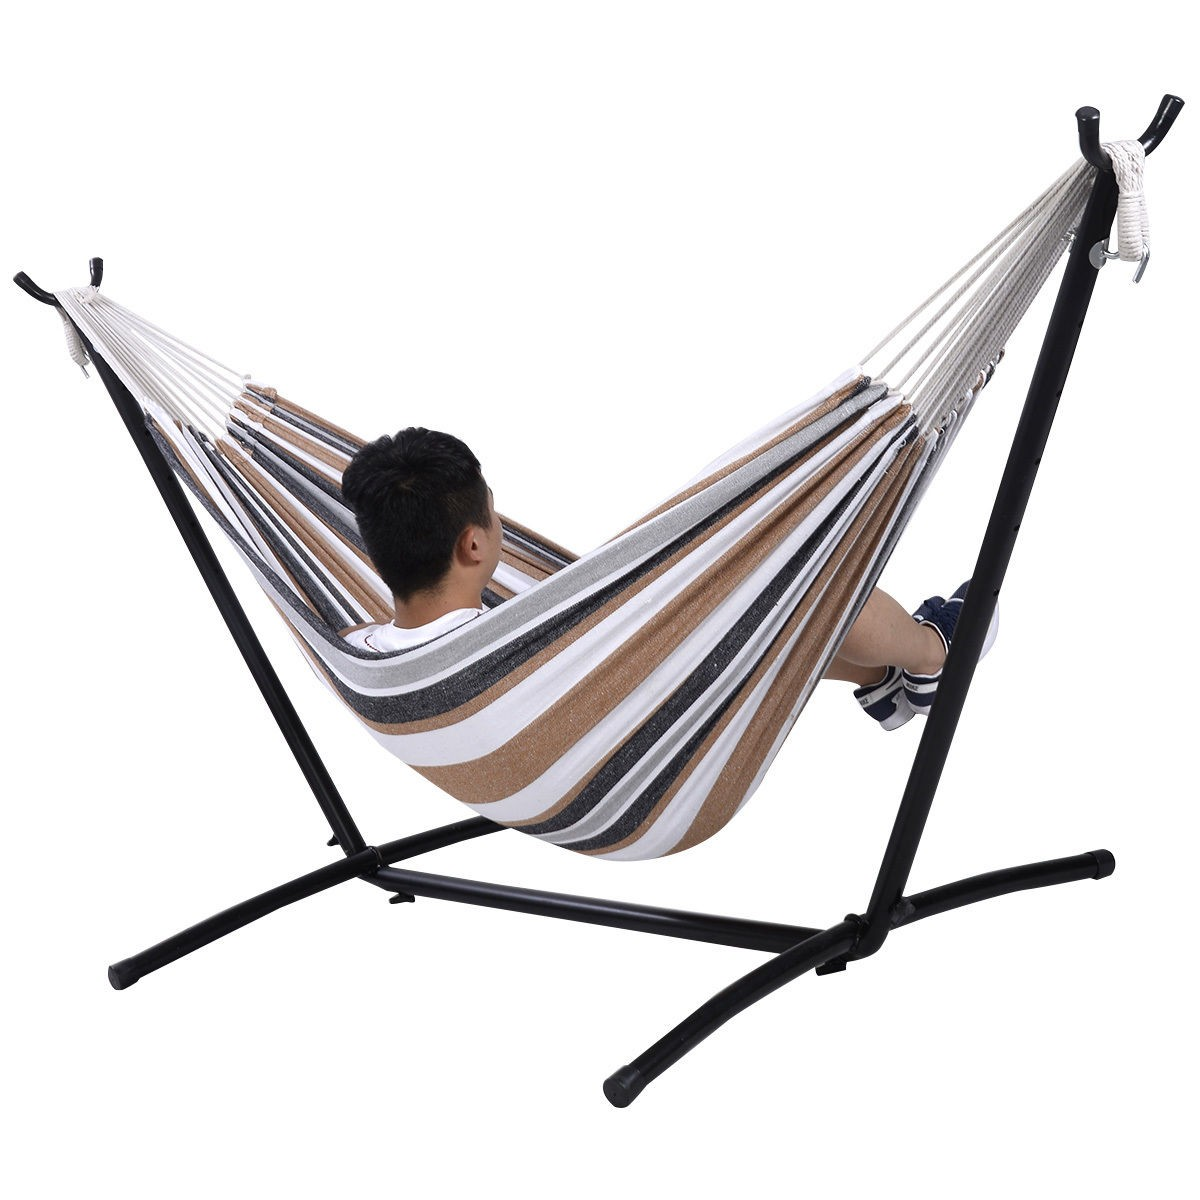 Apontus Double Hammock with Space Saving Steel Stand Includes Portable Carrying Case (Desert Stripe)